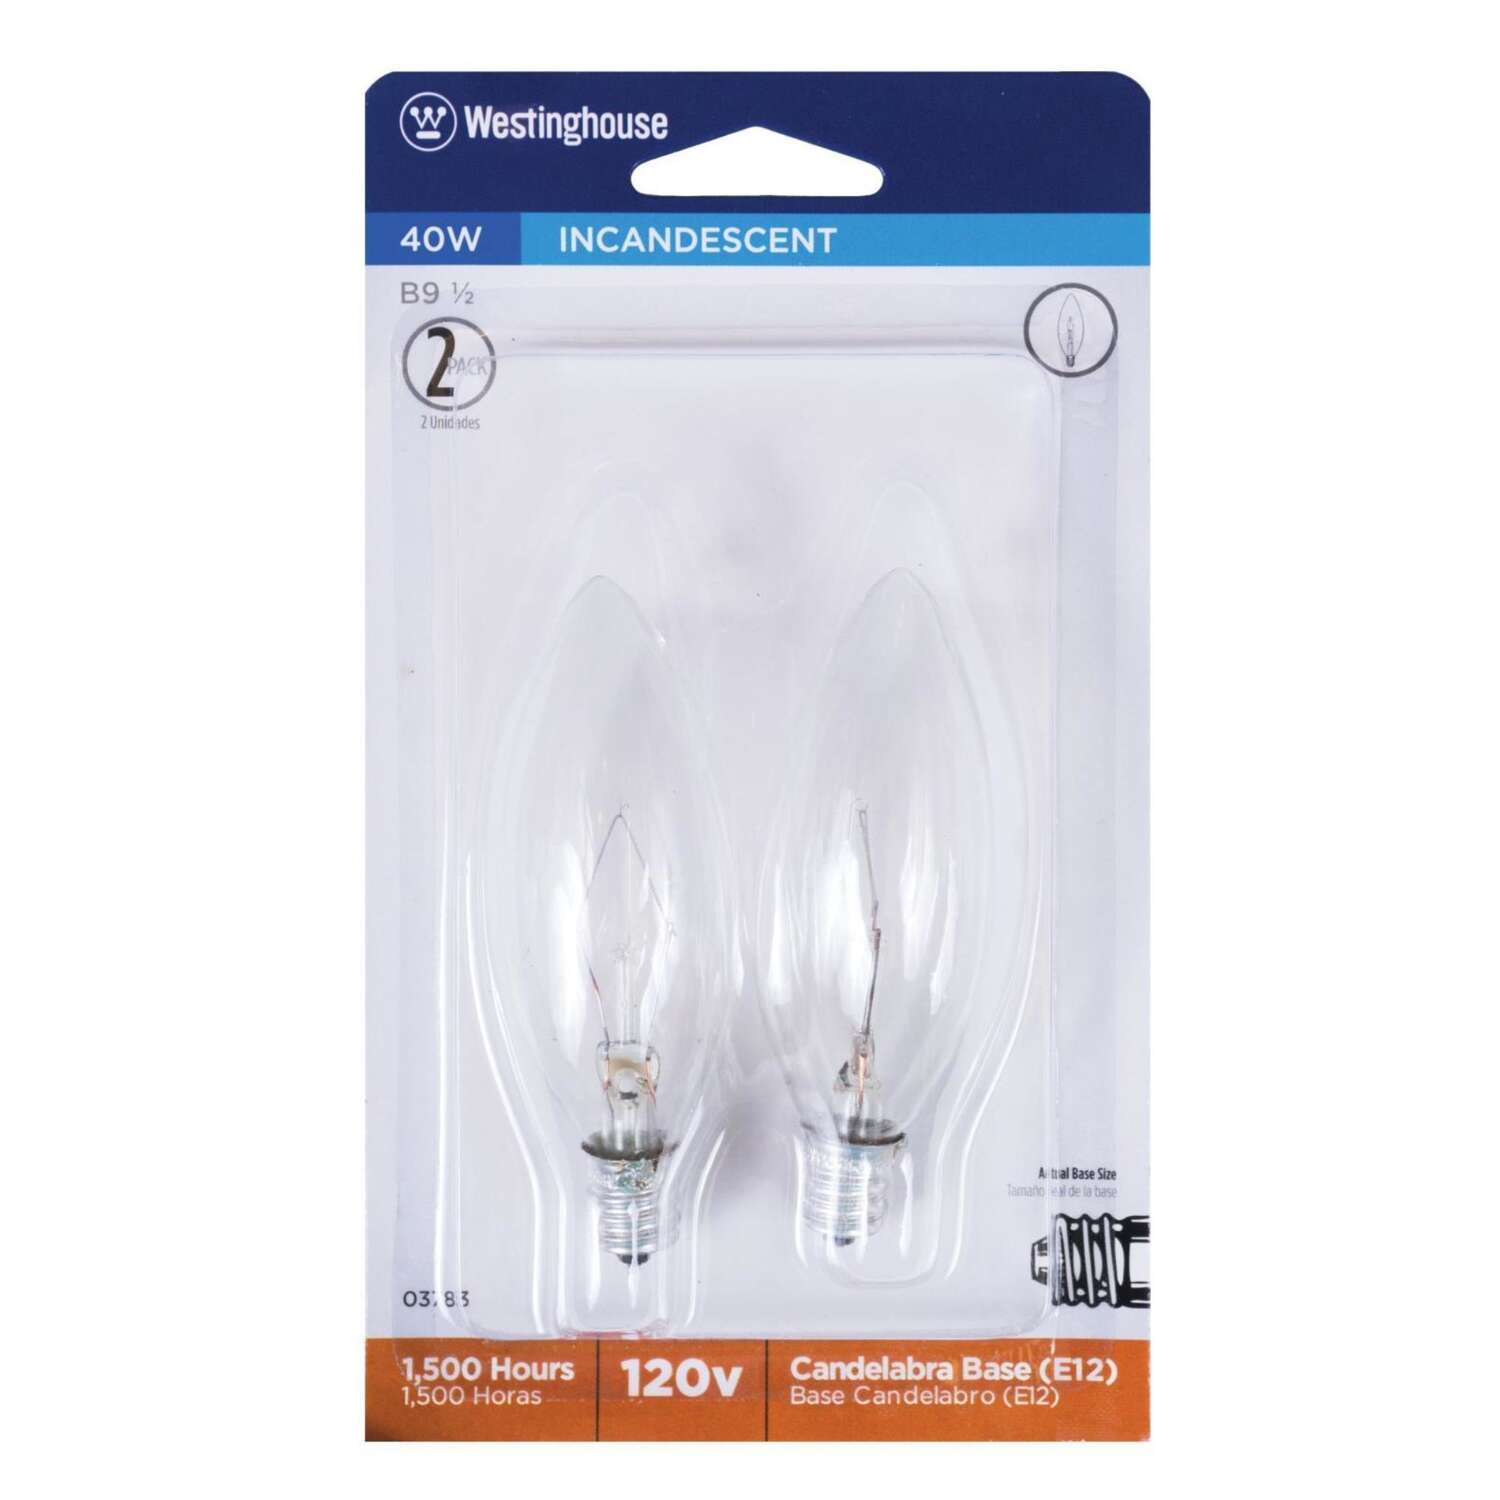 Westinghouse  40 watts BA9.5  Incandescent Bulb  365 lumens Warm White  Decorative  2 pk